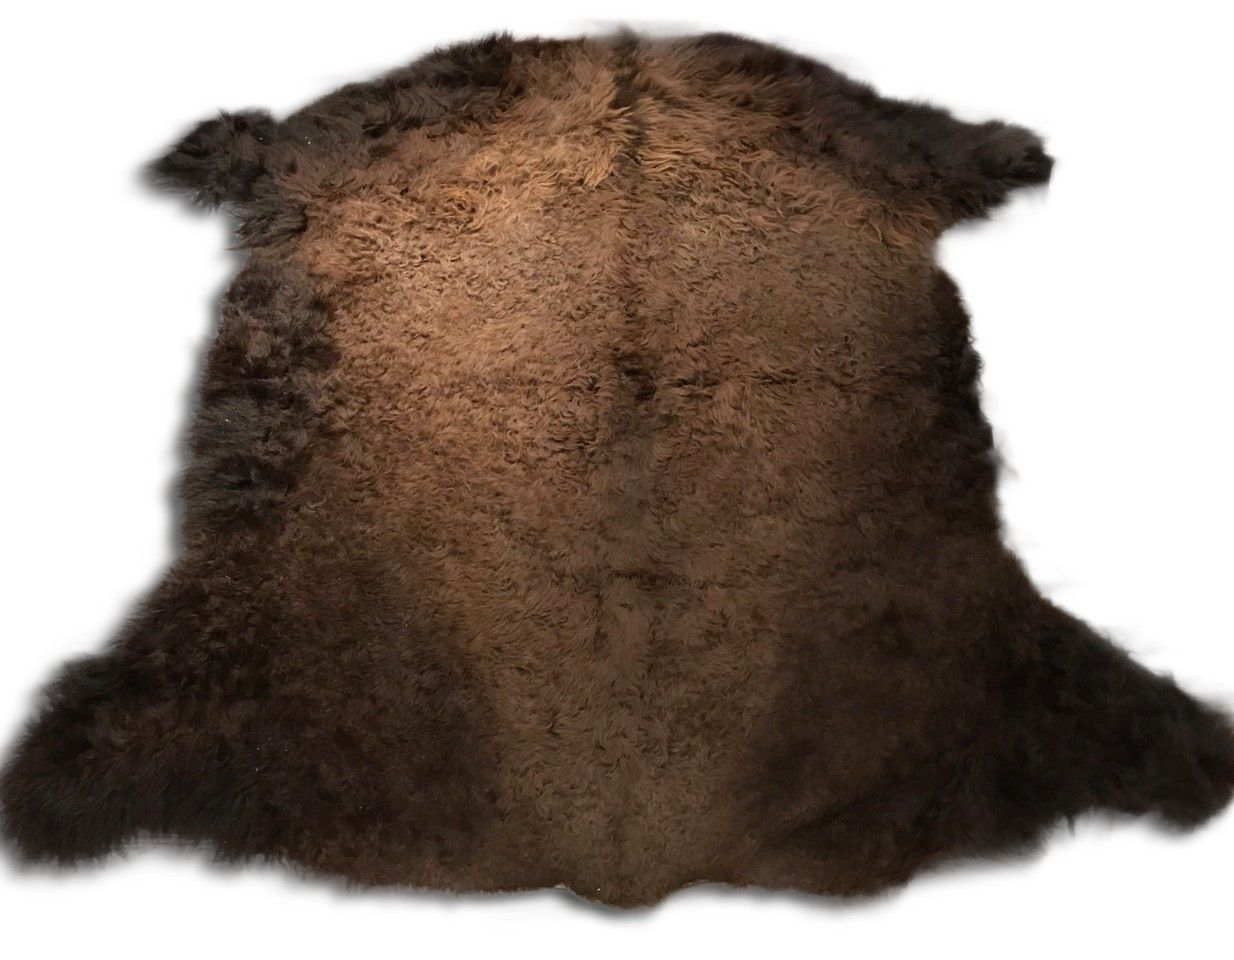 Bison Fur Skins In 2020 Skin Rugs Faux Sheepskin Rug Scandinavian Rug